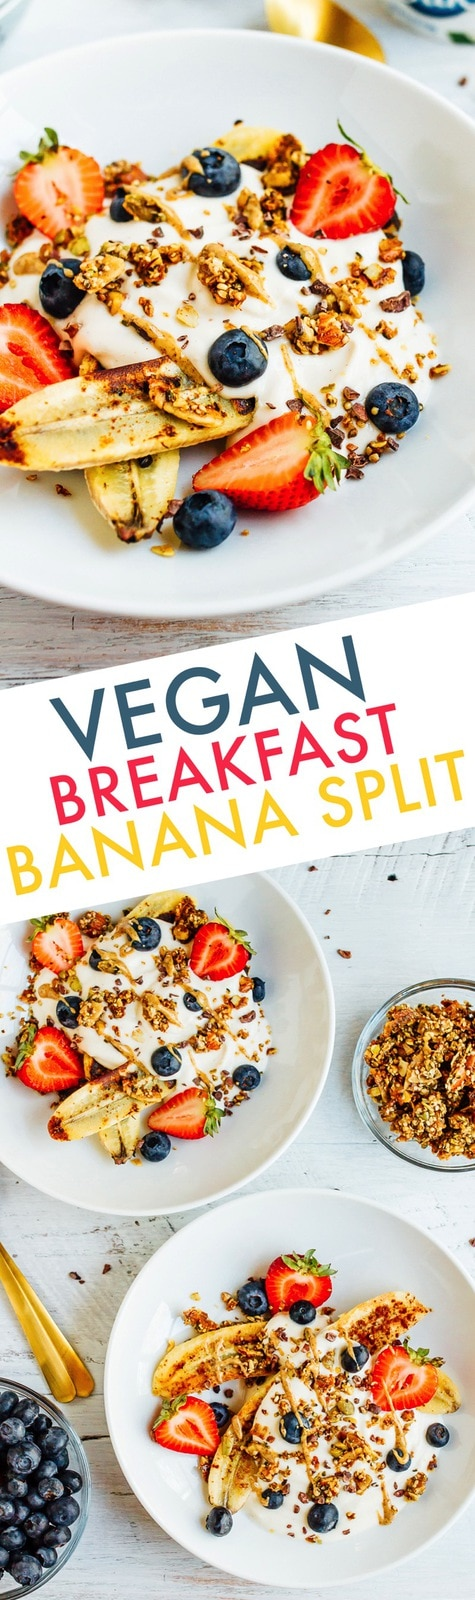 Have a dessert-inspired morning with this vegan banana split breakfast bowl. It's loaded with dairy-free yogurt, caramelized bananas, fresh berries, cacao nibs and grain-free granola. Vegan, gluten-free and kid-friendly!